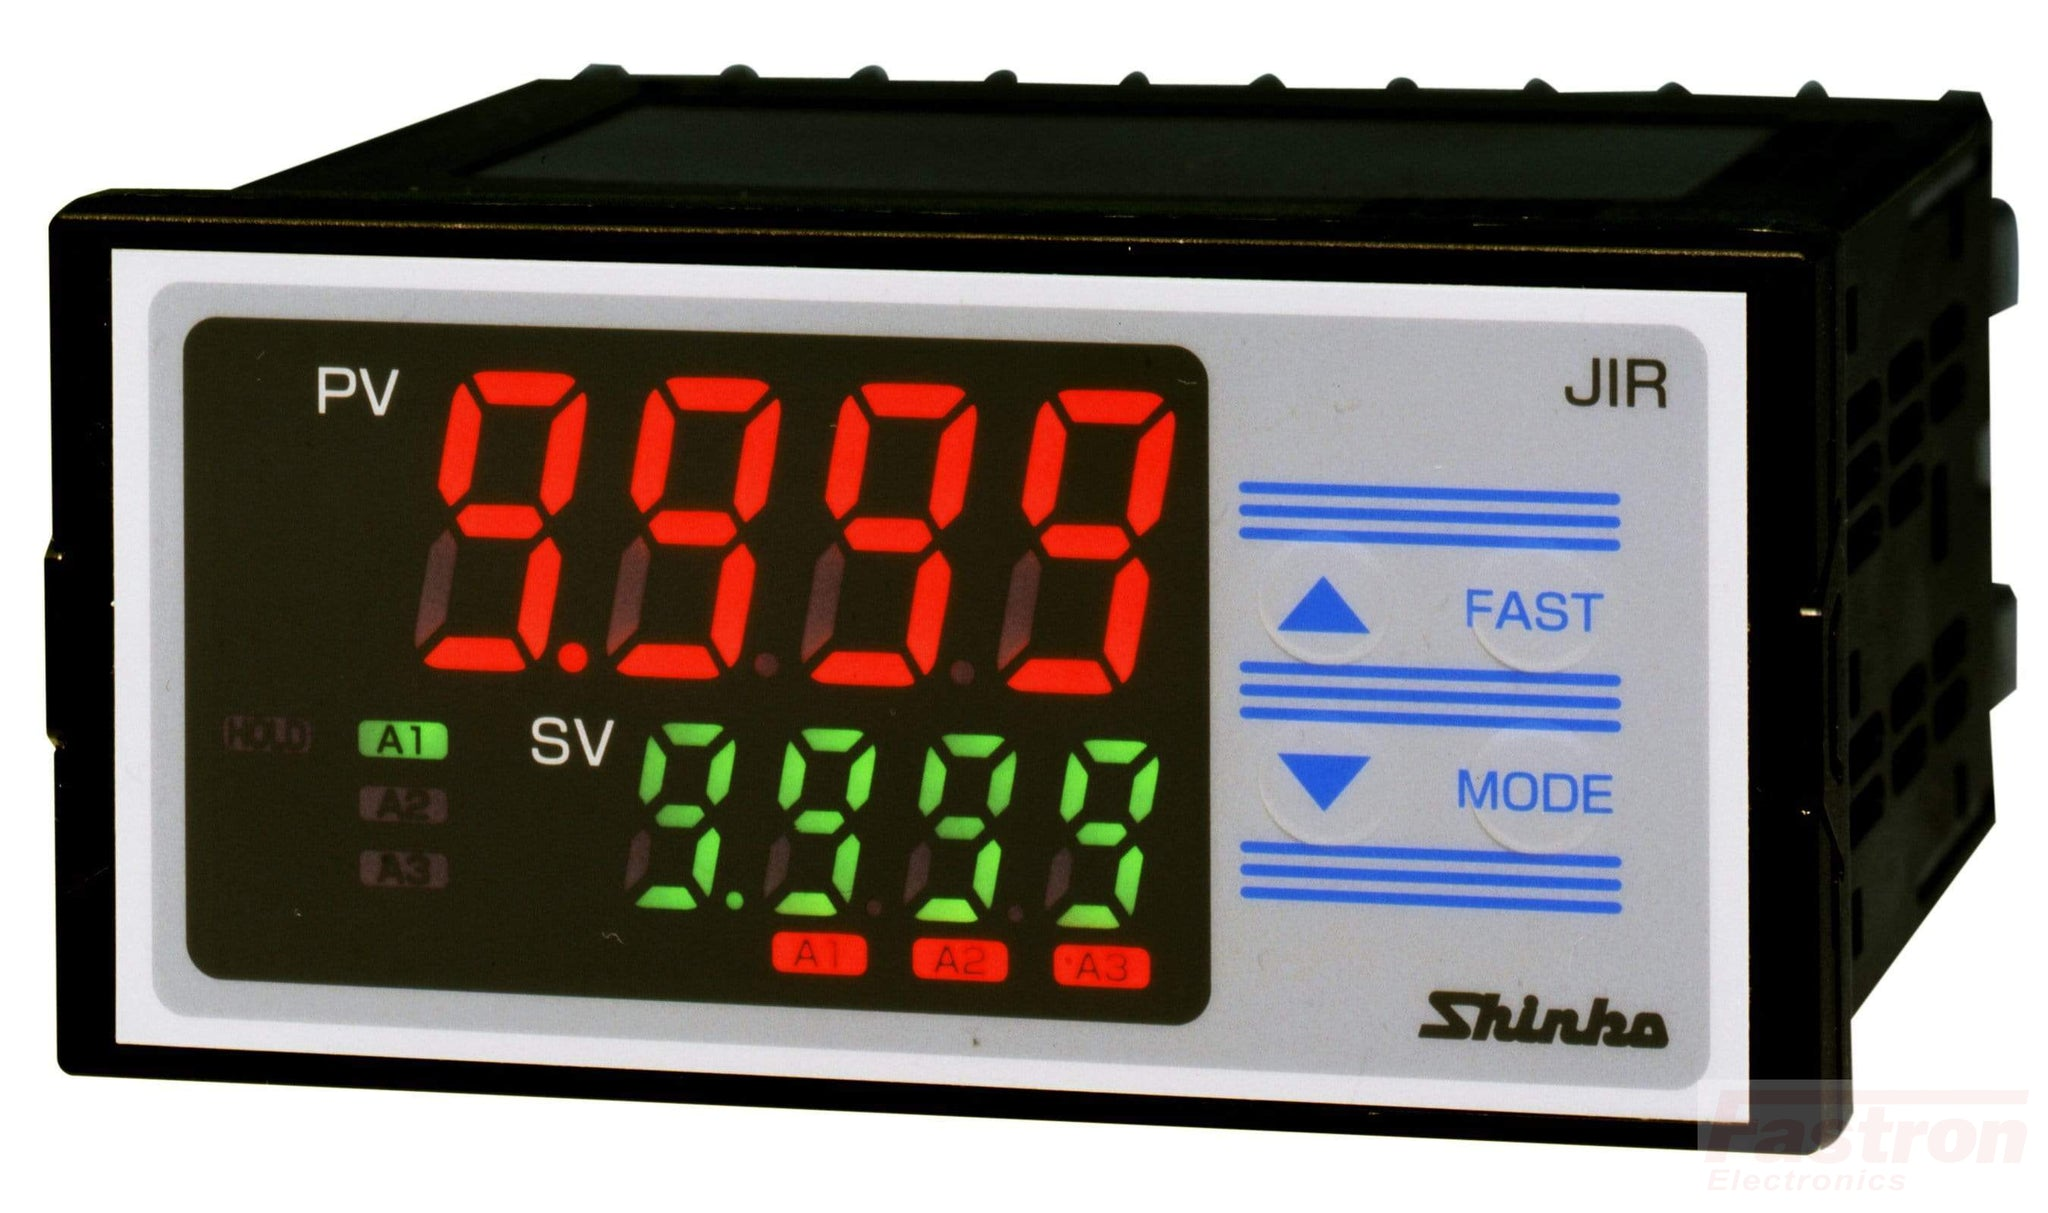 JIR301M1-C5 Indicator, 48x96mm, 24VAC/DC, 3 Alarm outputs, 4-20mA Retransmission , RS485 Comms